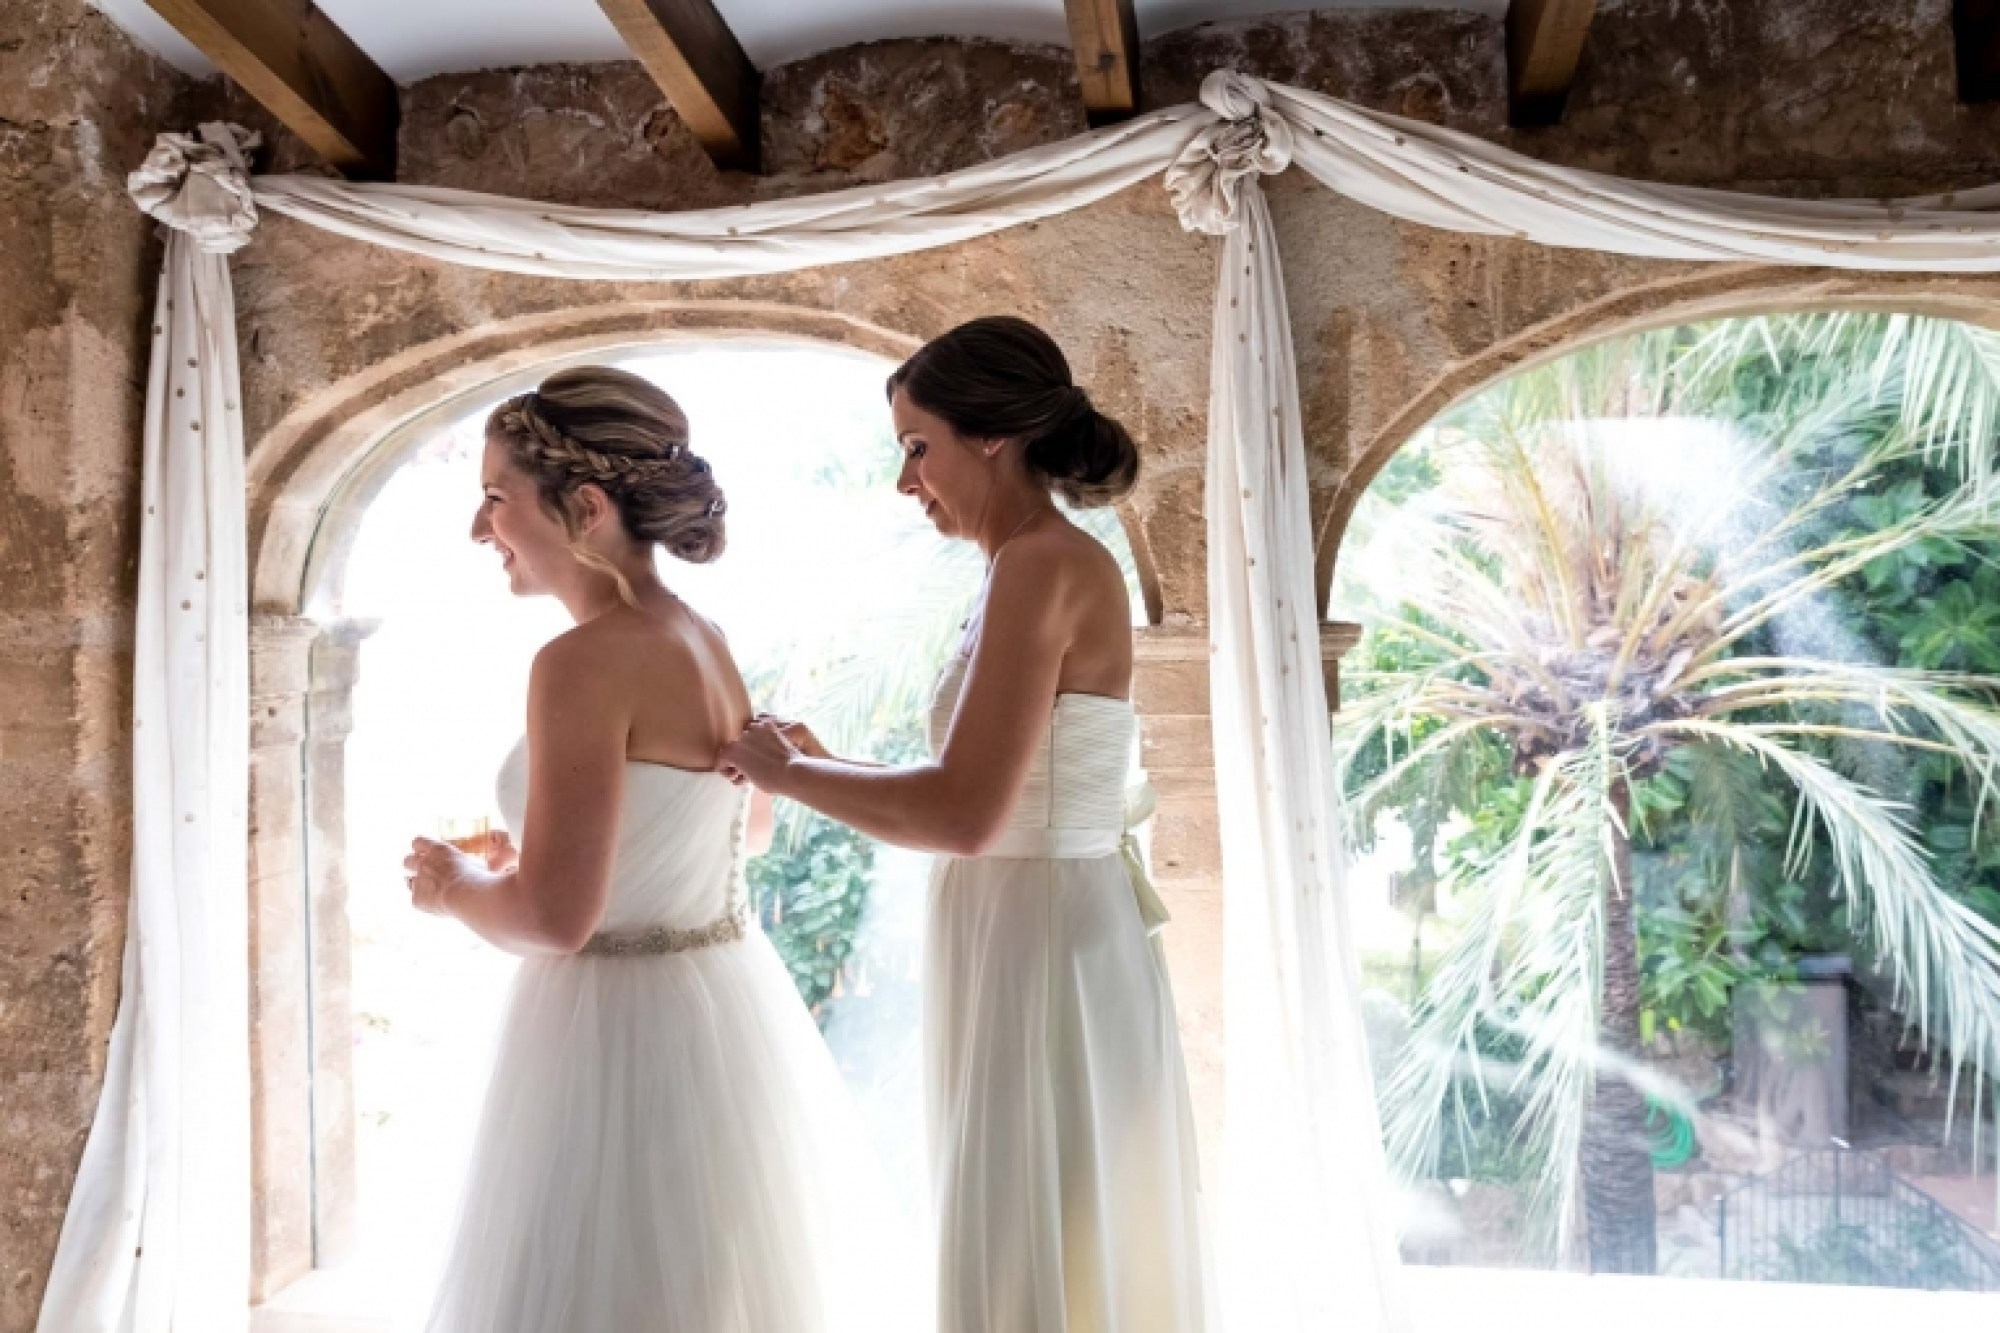 A bridesmaid helps the bride to put on her wedding dress at Hotel Can Vedera in Fornalutx